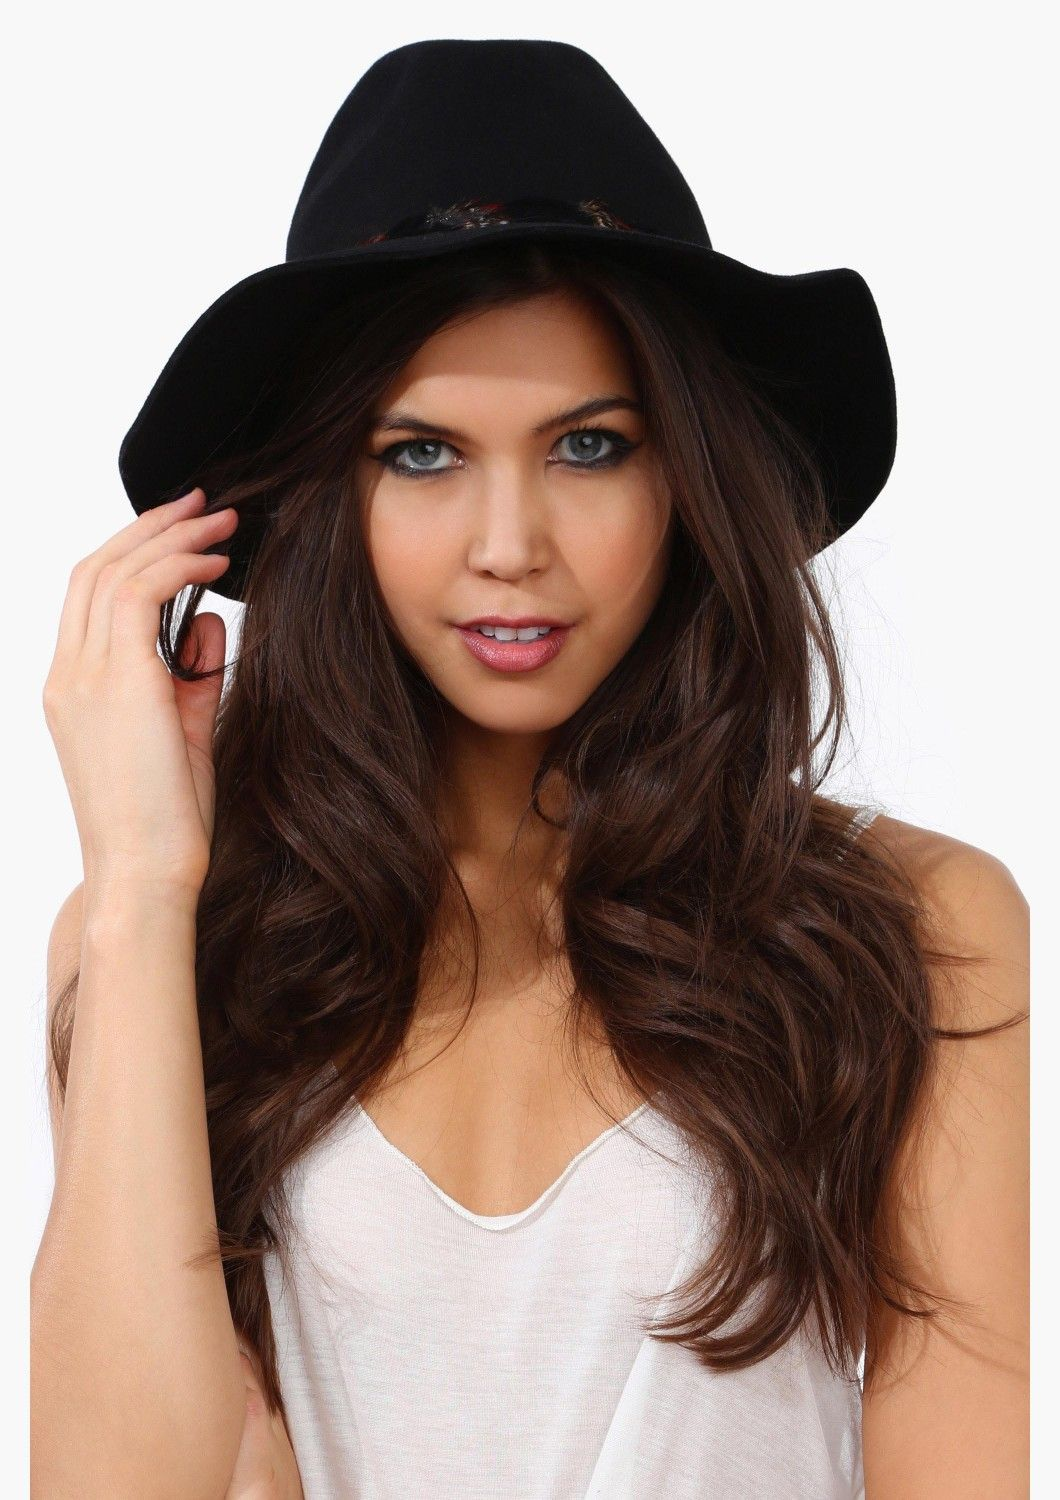 Cute Black Boho Chic Wide Brim Hat with Feather Detailing All Around ... 2a4fd686072